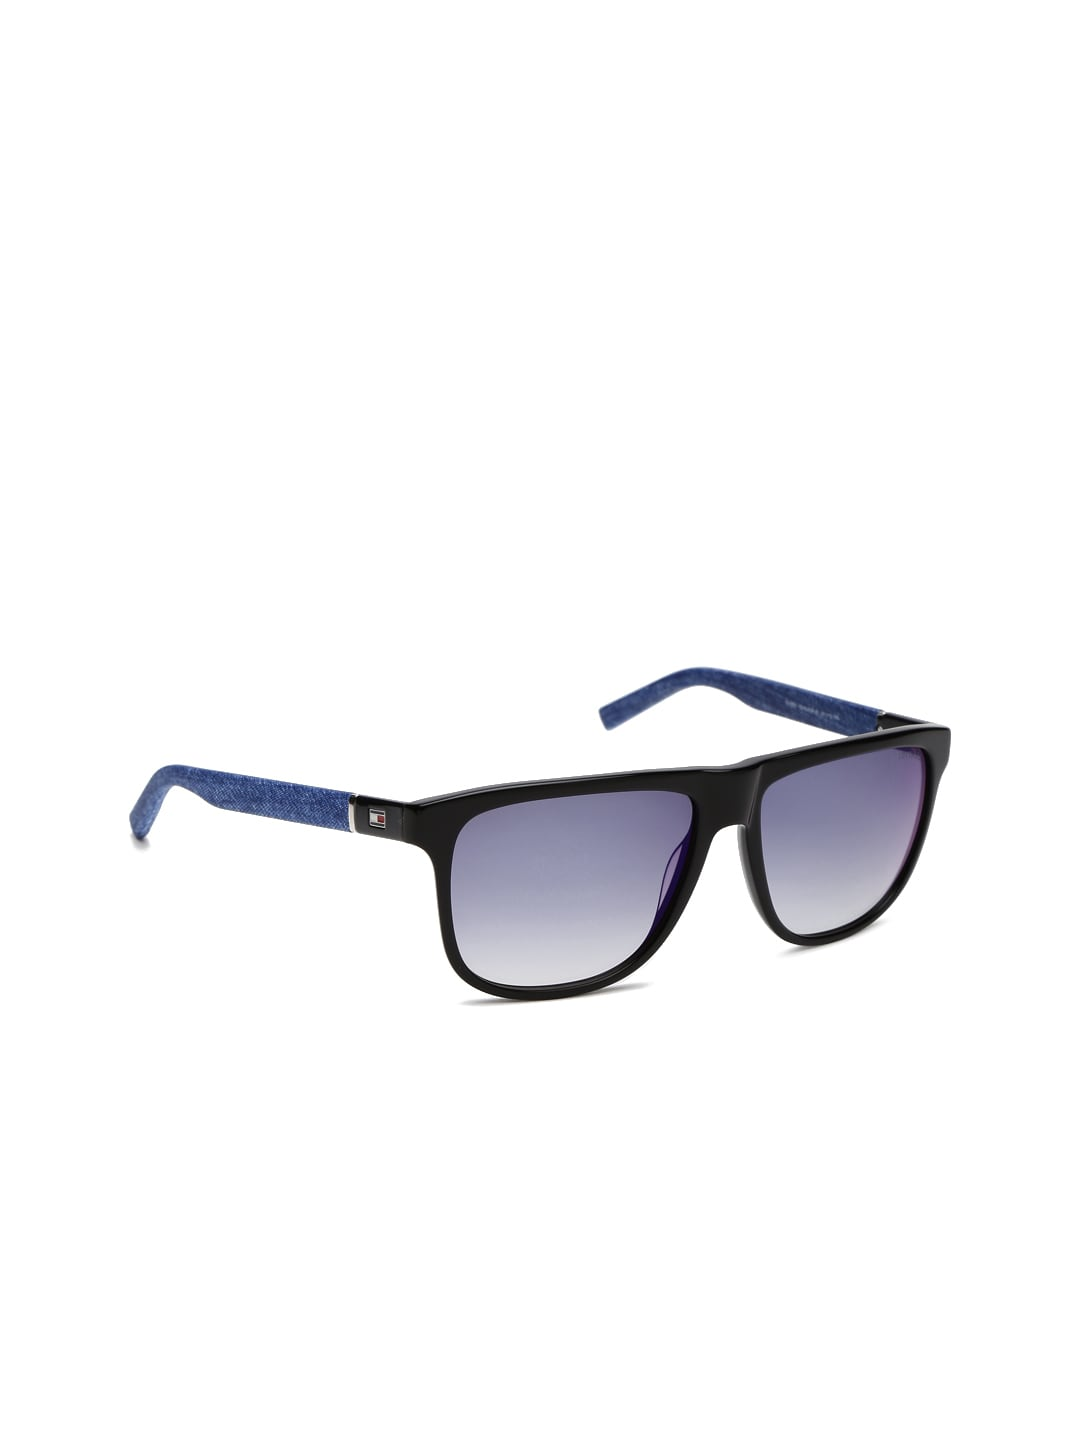 88f5c289fa8 Tommy Hilfiger Sunglasses For Men - Buy Tommy Hilfiger Sunglasses For Men  online in India